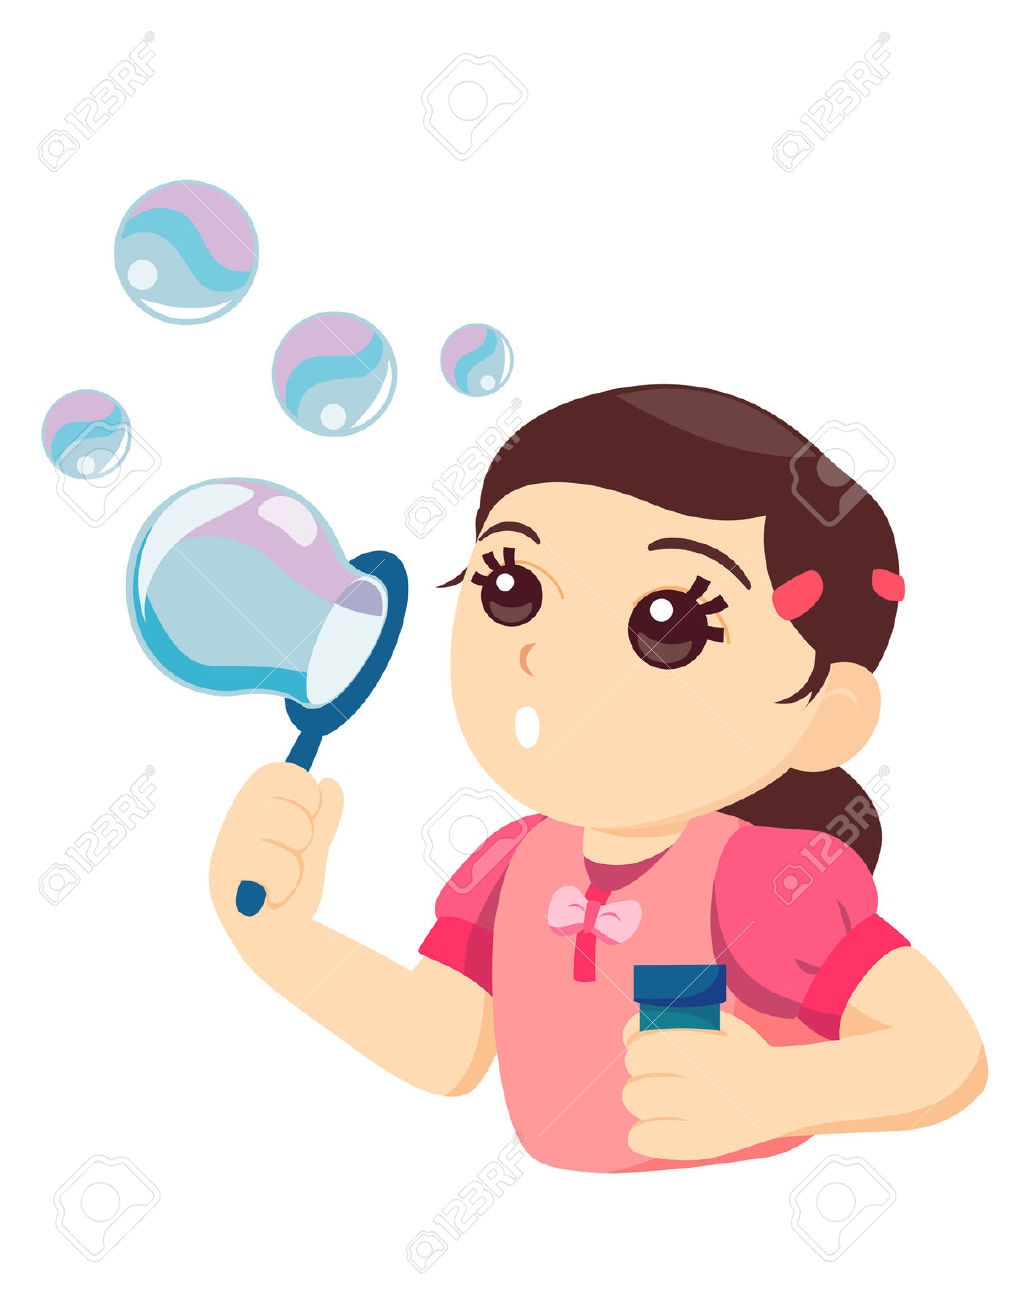 Cute clipart of kid blowing bubbles.